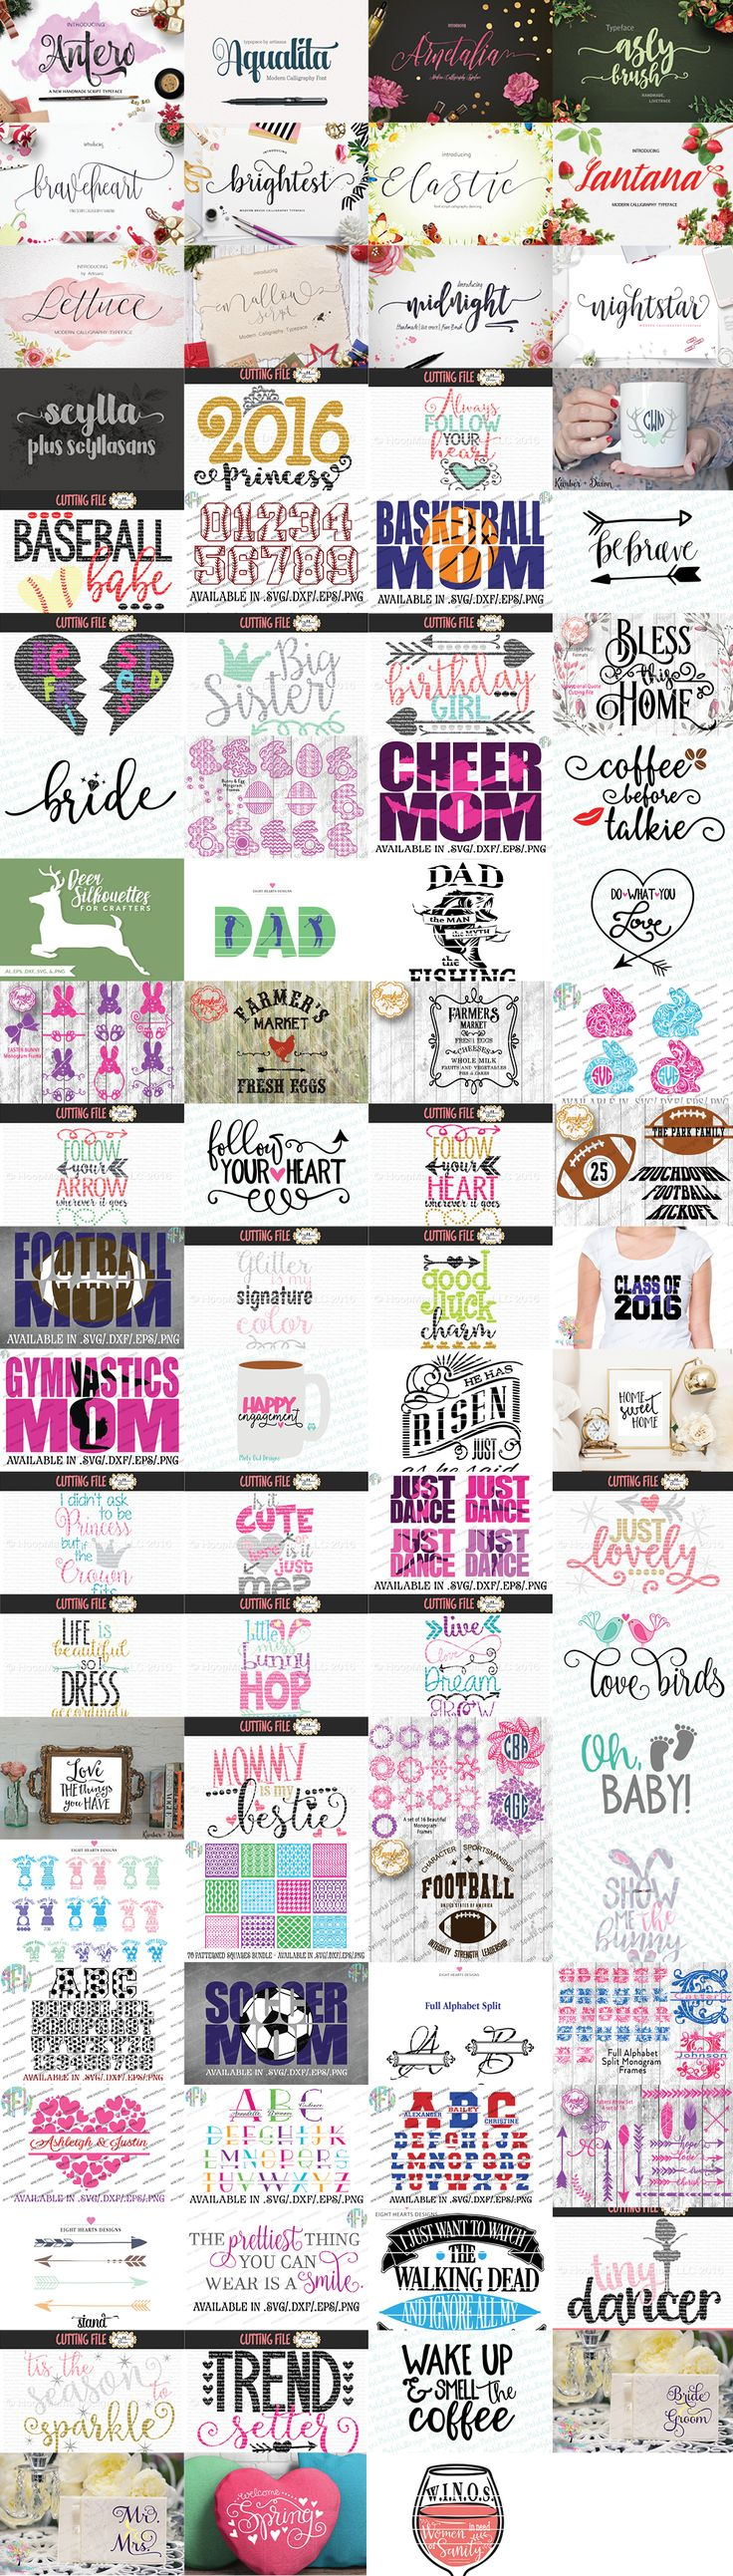 Download the file for Glitter is My Signature Color design and put it on shirts, mugs, home decor, etc. Get the Craftalicious Bundle today!